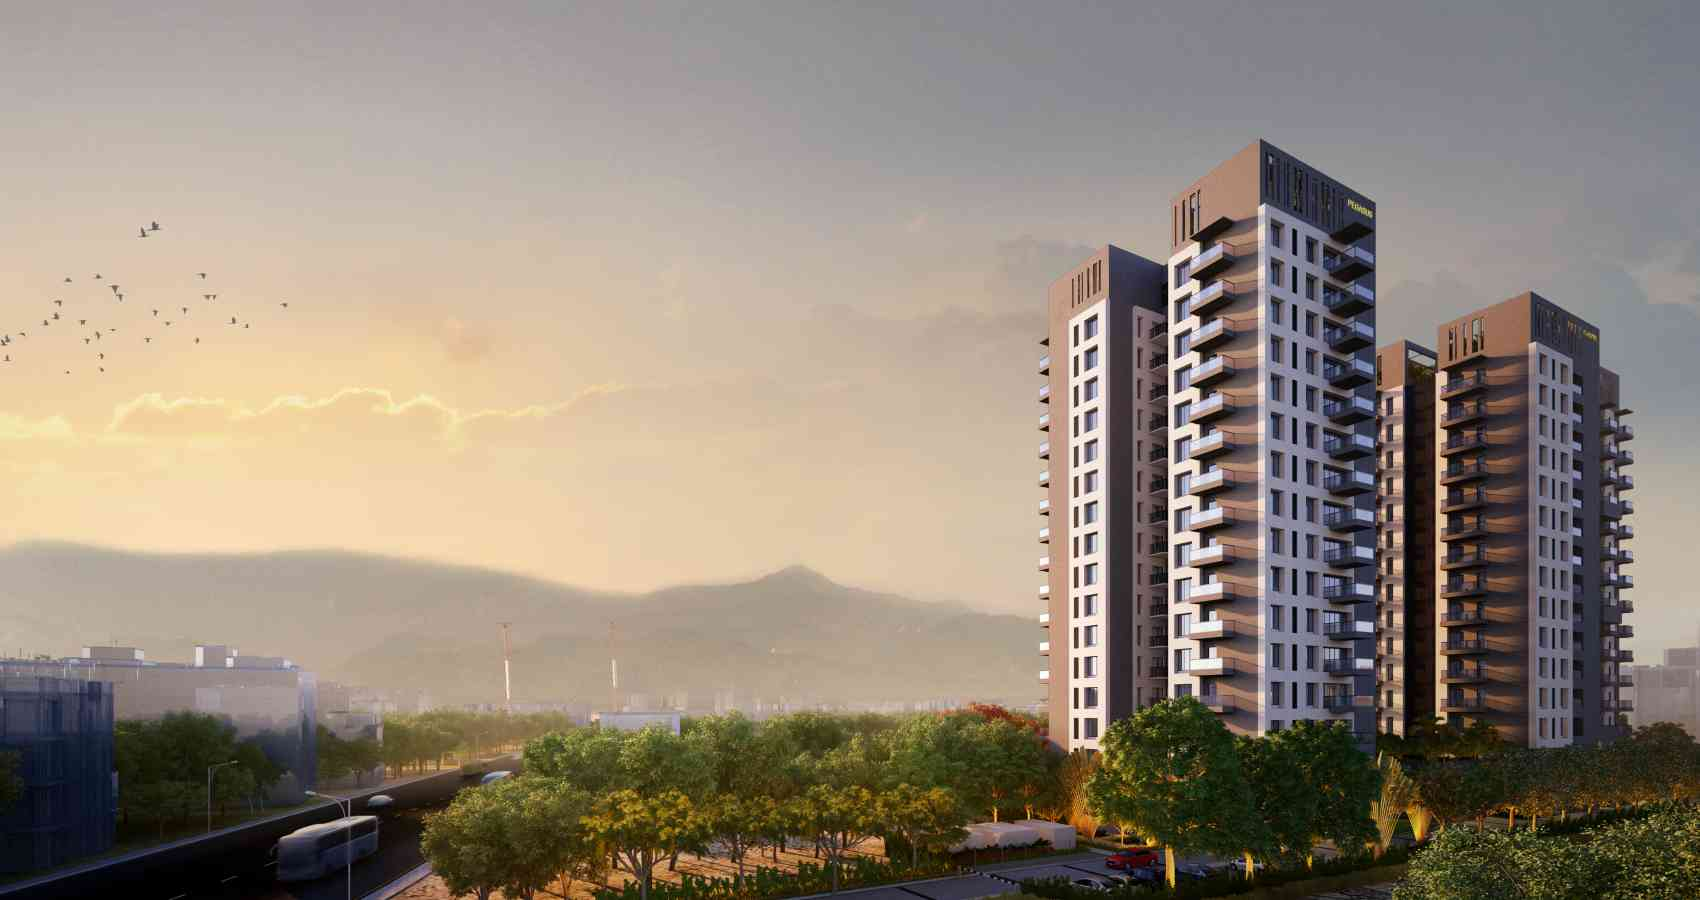 Tall residential structure of Darpan 88° near the highway during evening with the glimpses of sunset in the hills